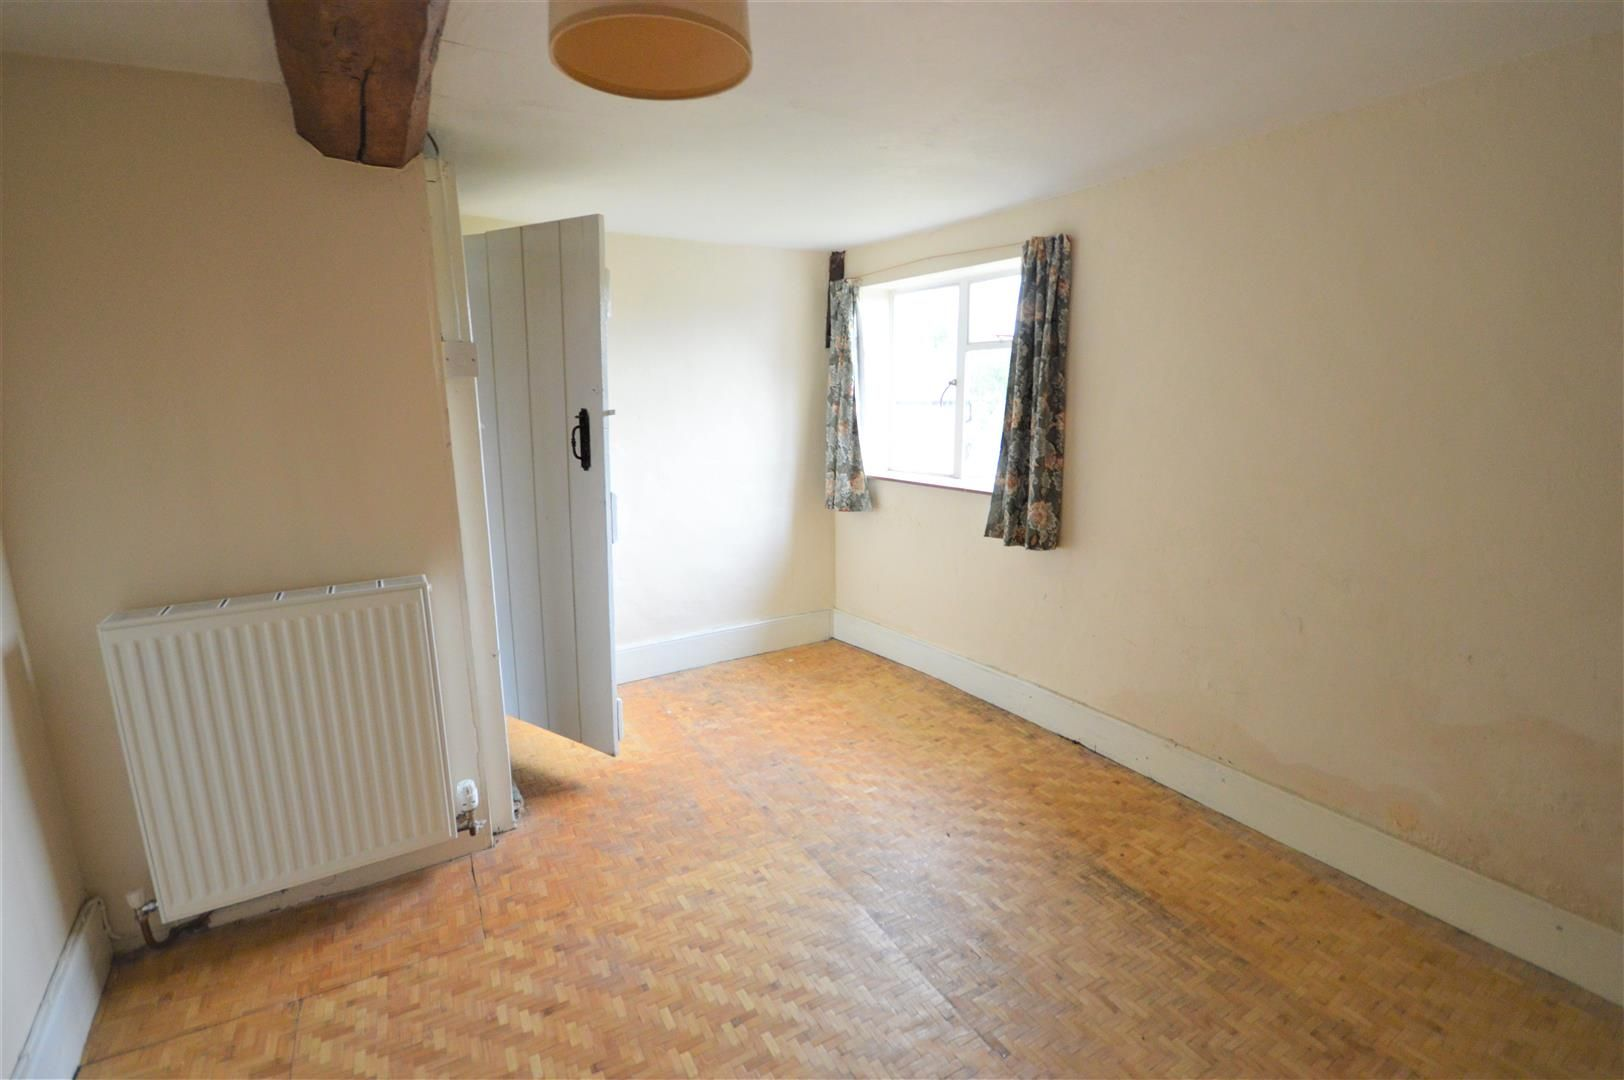 3 bed cottage for sale in Weobley 11